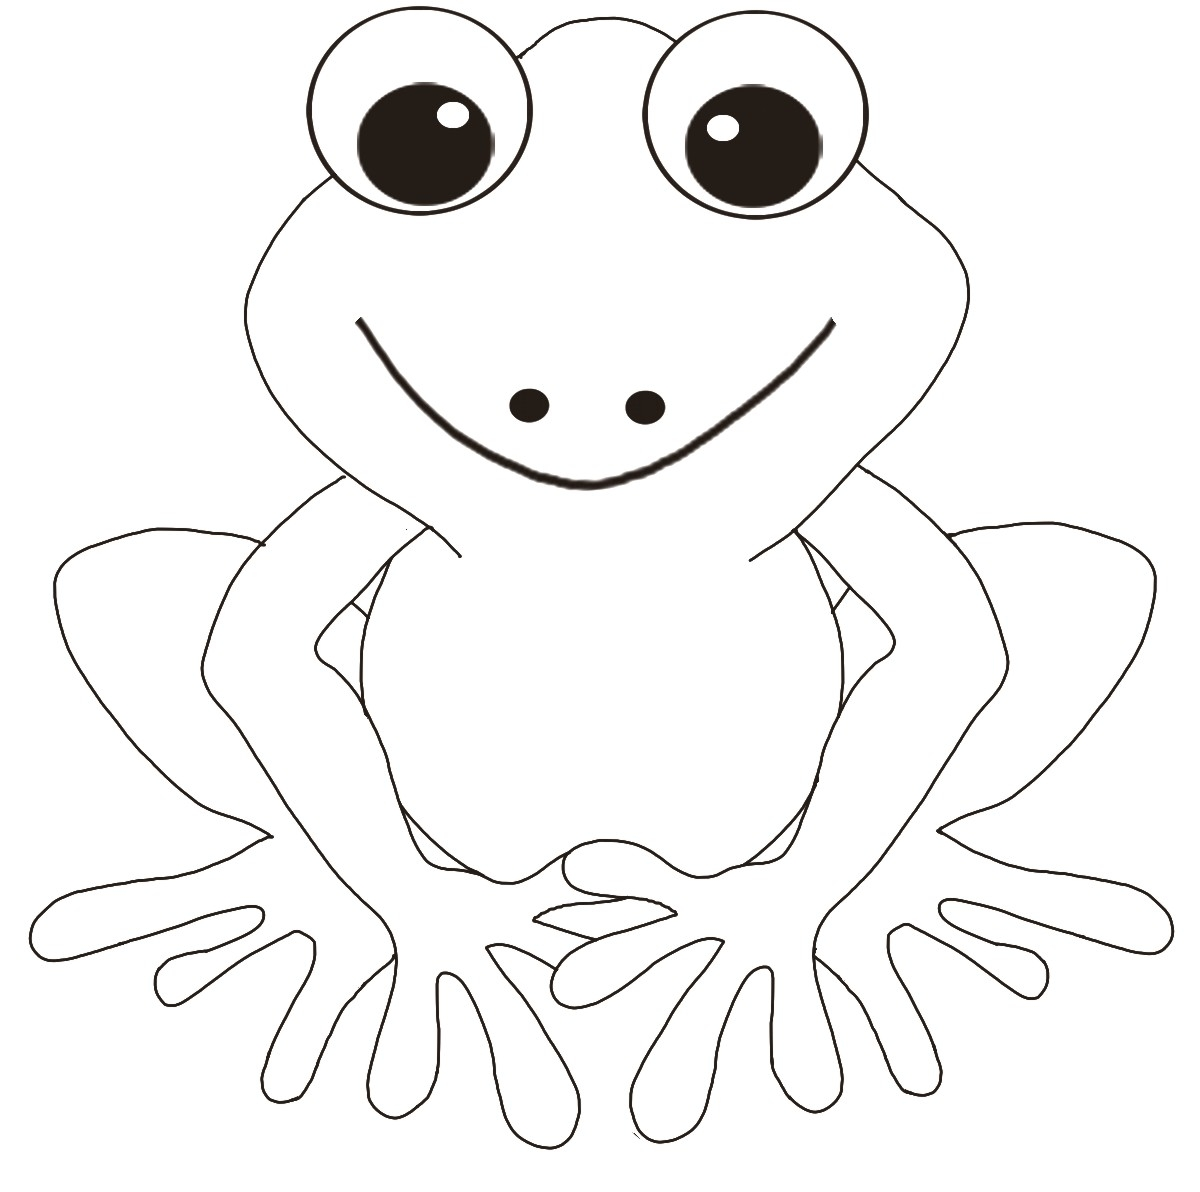 frog coloring pages - frog coloring pages